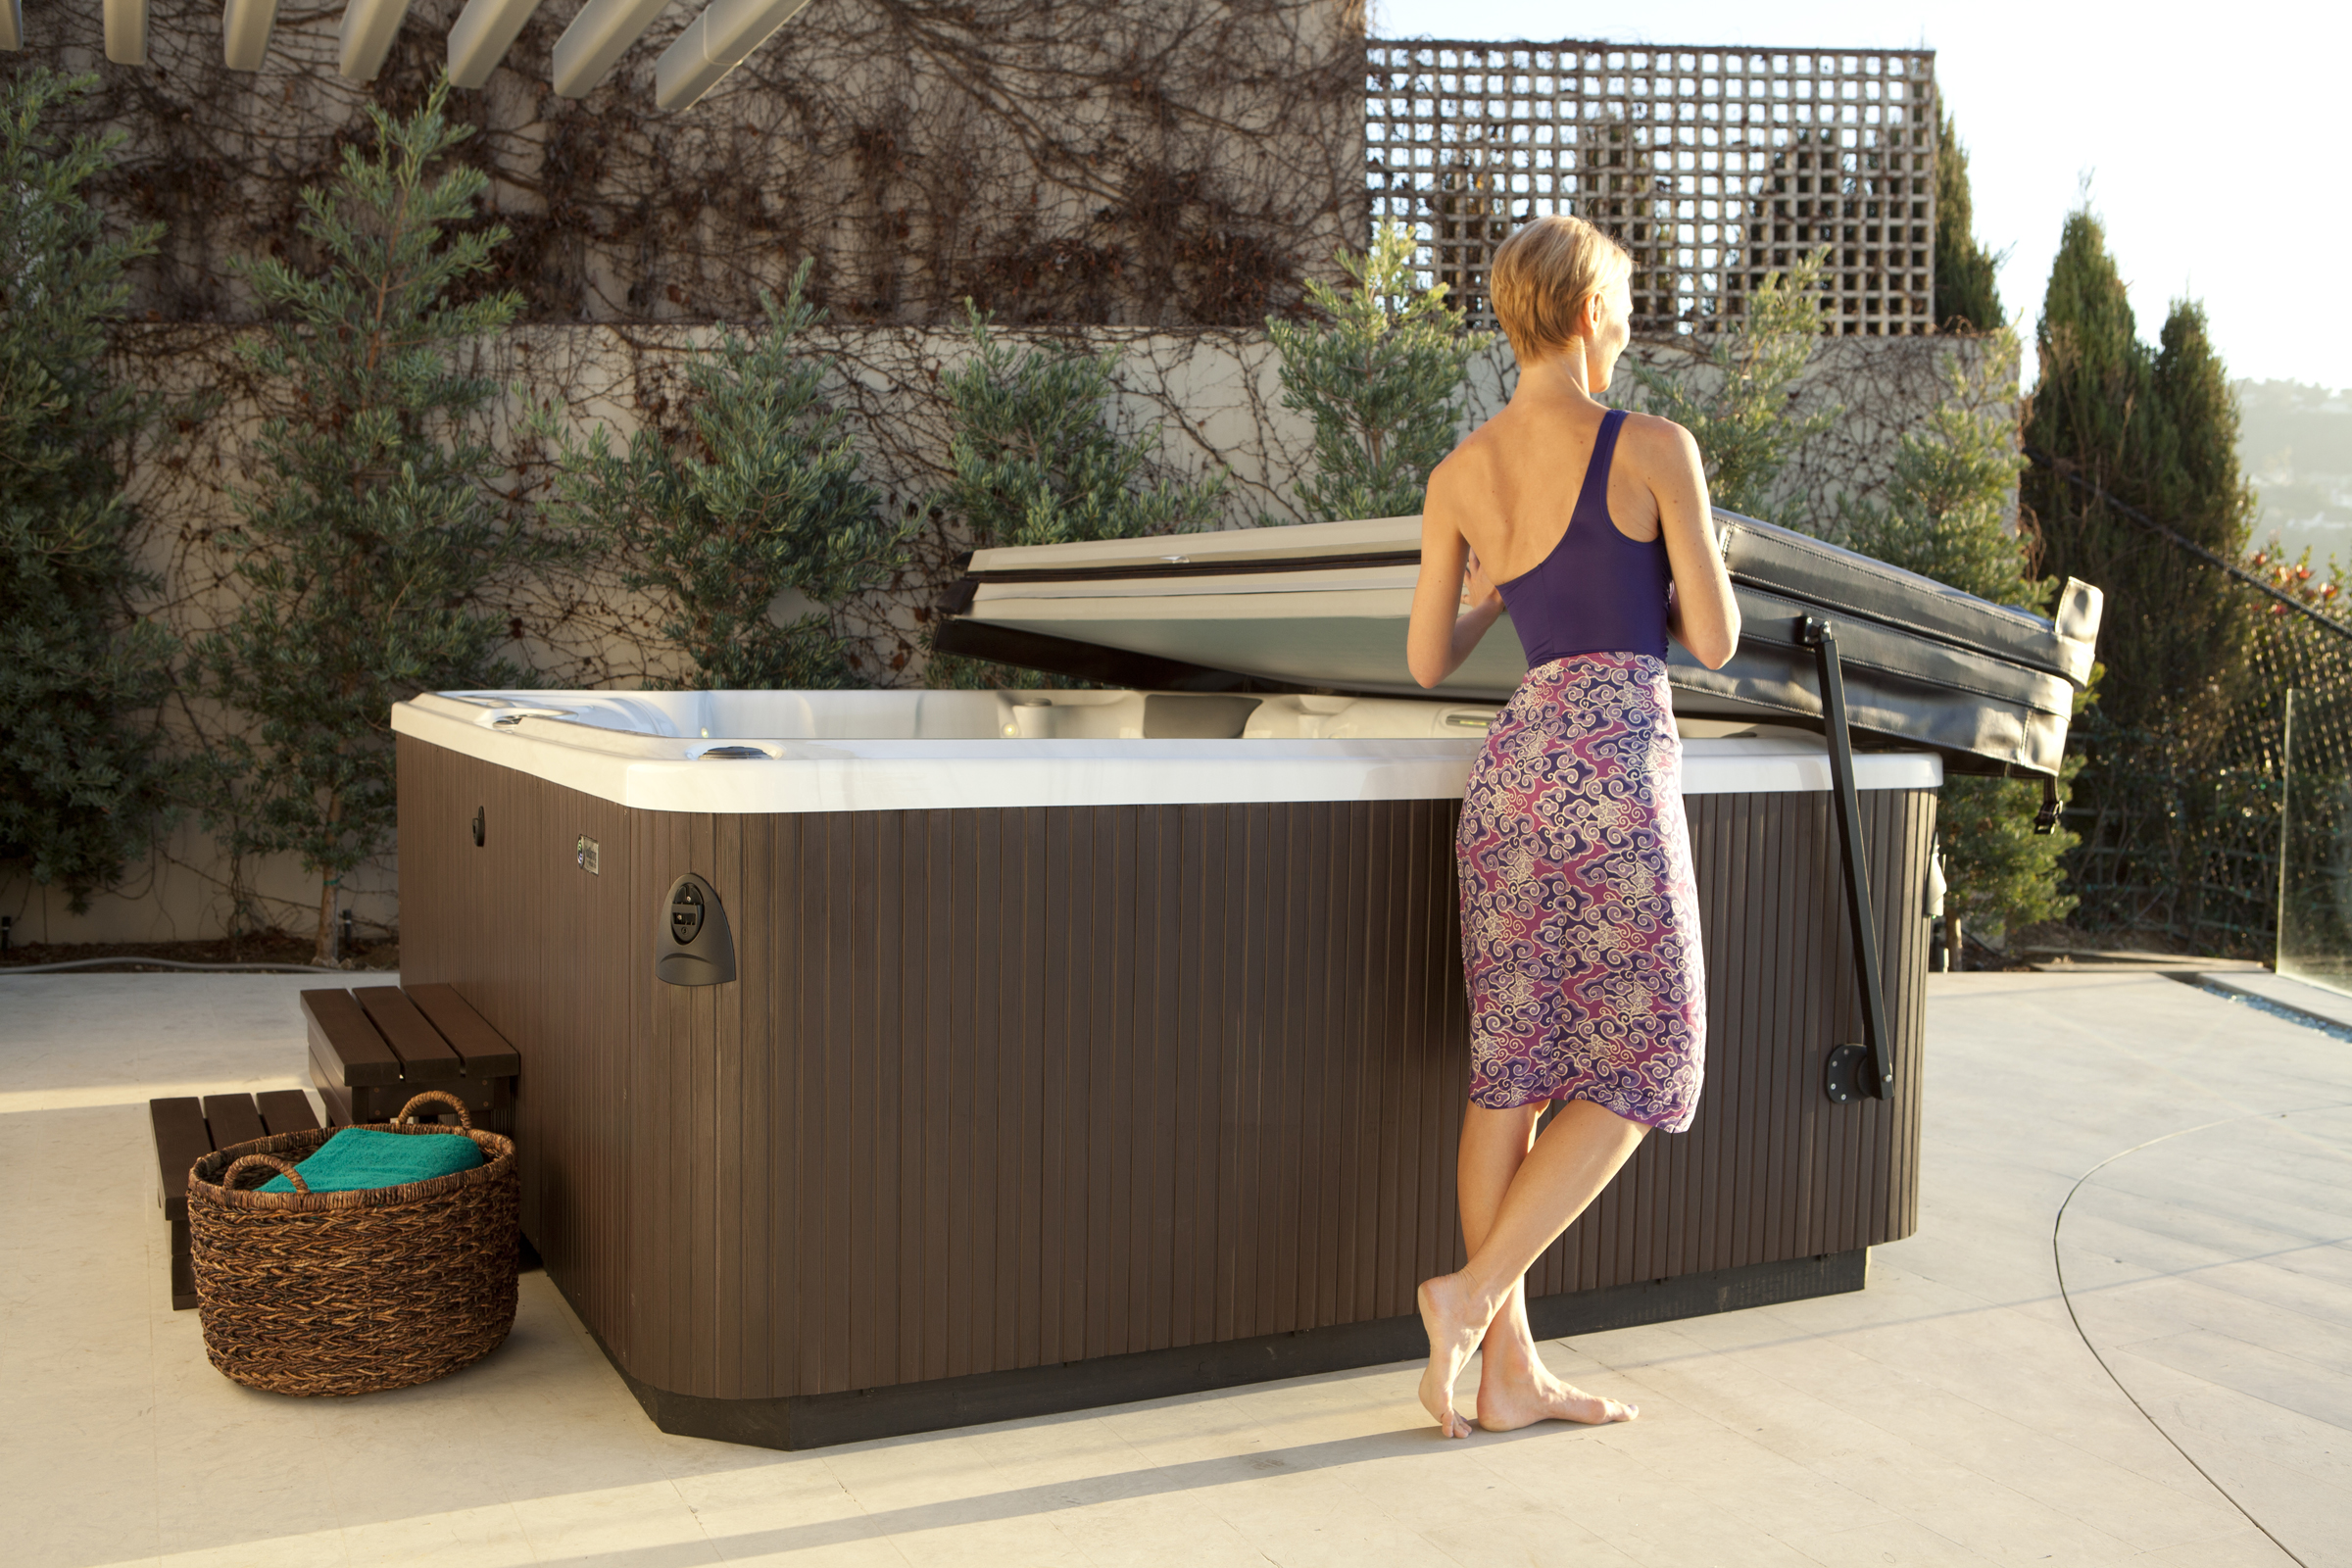 Hot Spring Tub P51 On Wow Furniture Home Design Ideas with Hot Spring Tub